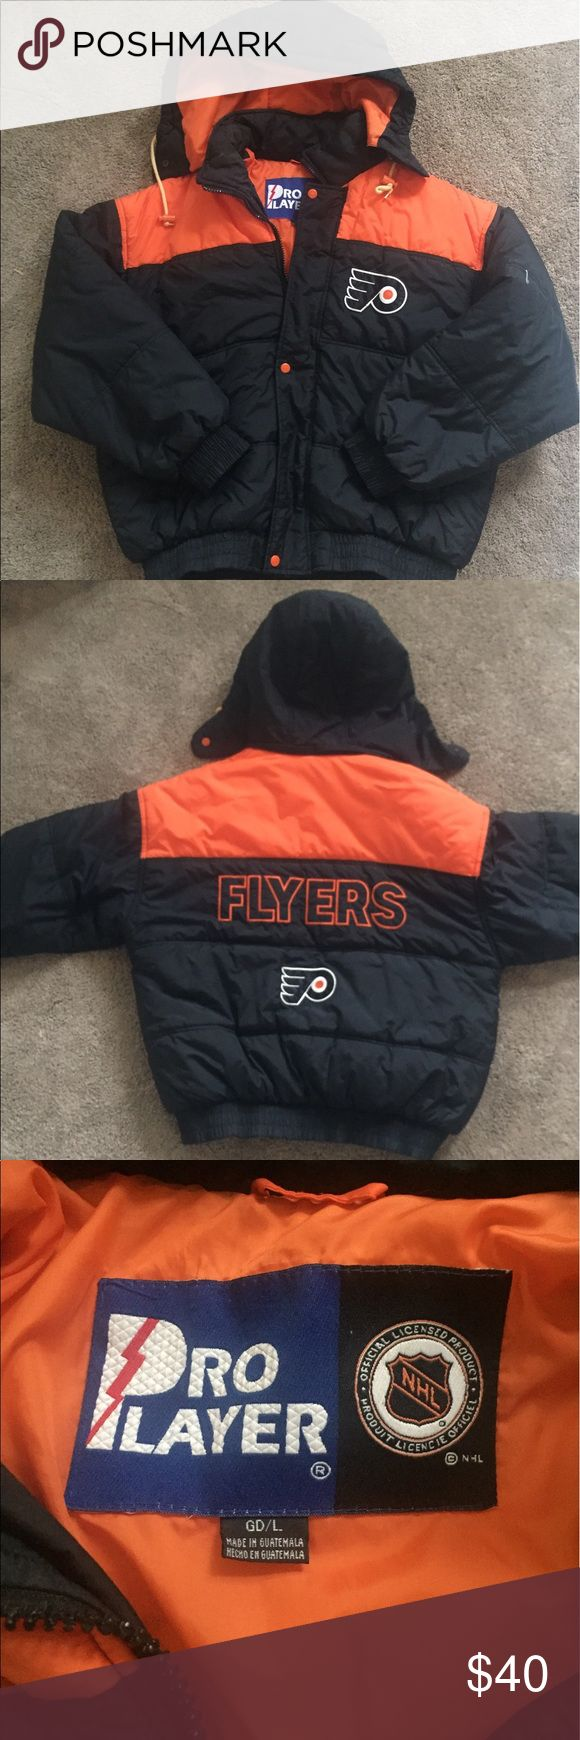 Vintage Pro Player Philadelphia Flyers Jacket L For sale is a 90s vintage Pro Player Philadelphia Flyers winter jacket. This item is in great condition and super puffy. It is a size Large. Pro Player Jackets & Coats Puffers